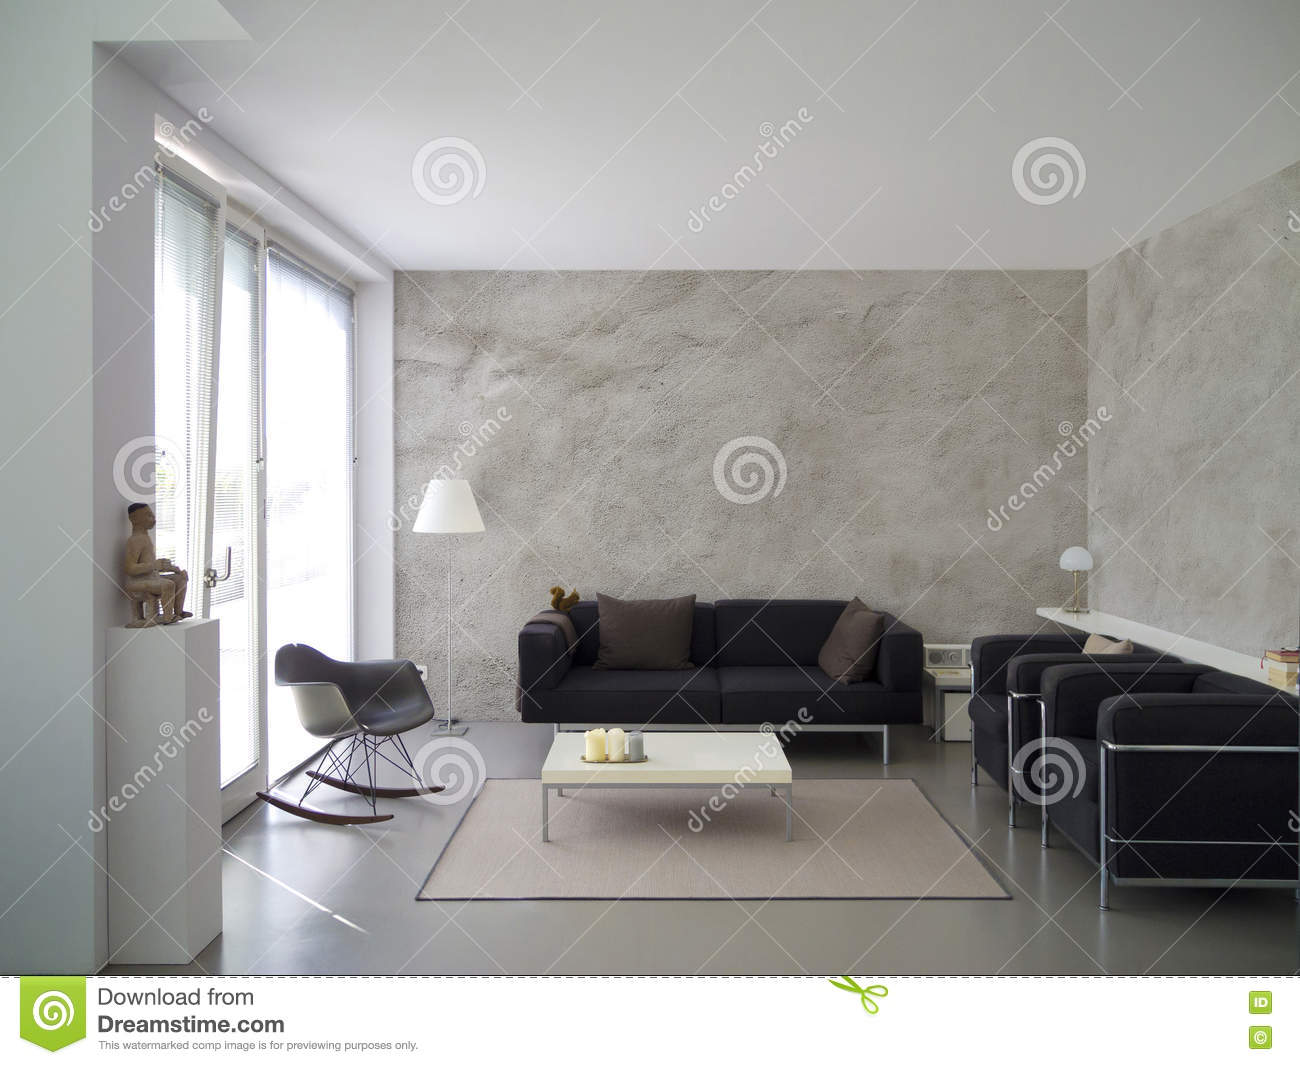 Modern Living Room Space modern living room interior with rough cast wall stock image - image